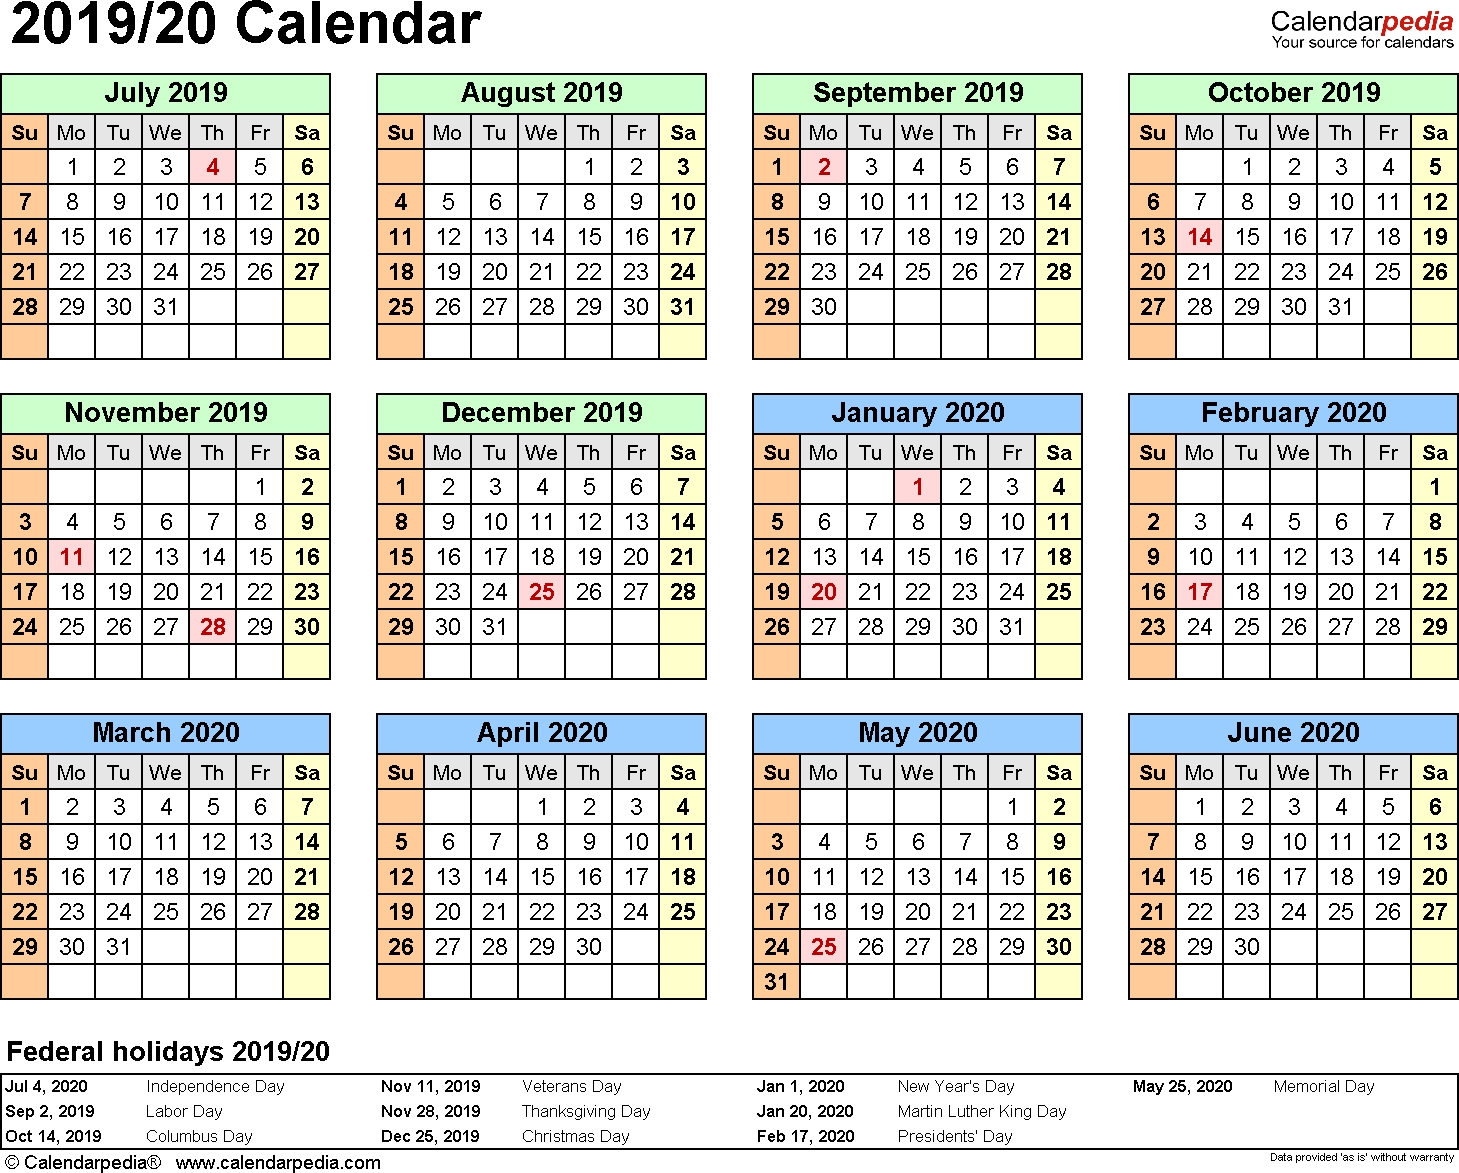 Split Year Calendar 2019/20 (July To June) - Excel Templates with regard to Calendar Maker July 2019-June 2020